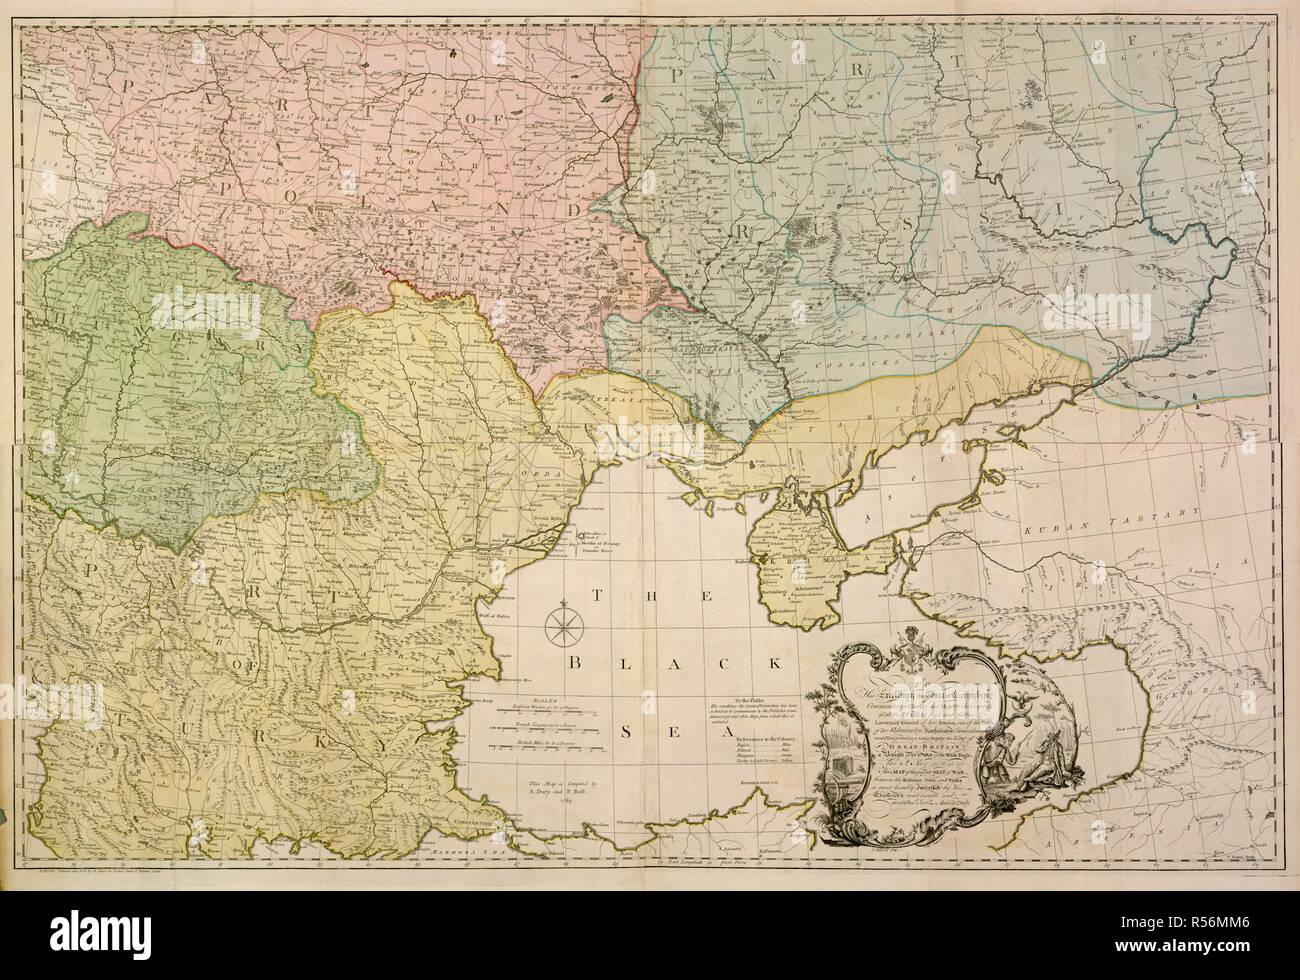 An 18th century map of Eastern Europe. To His Excellency the ...